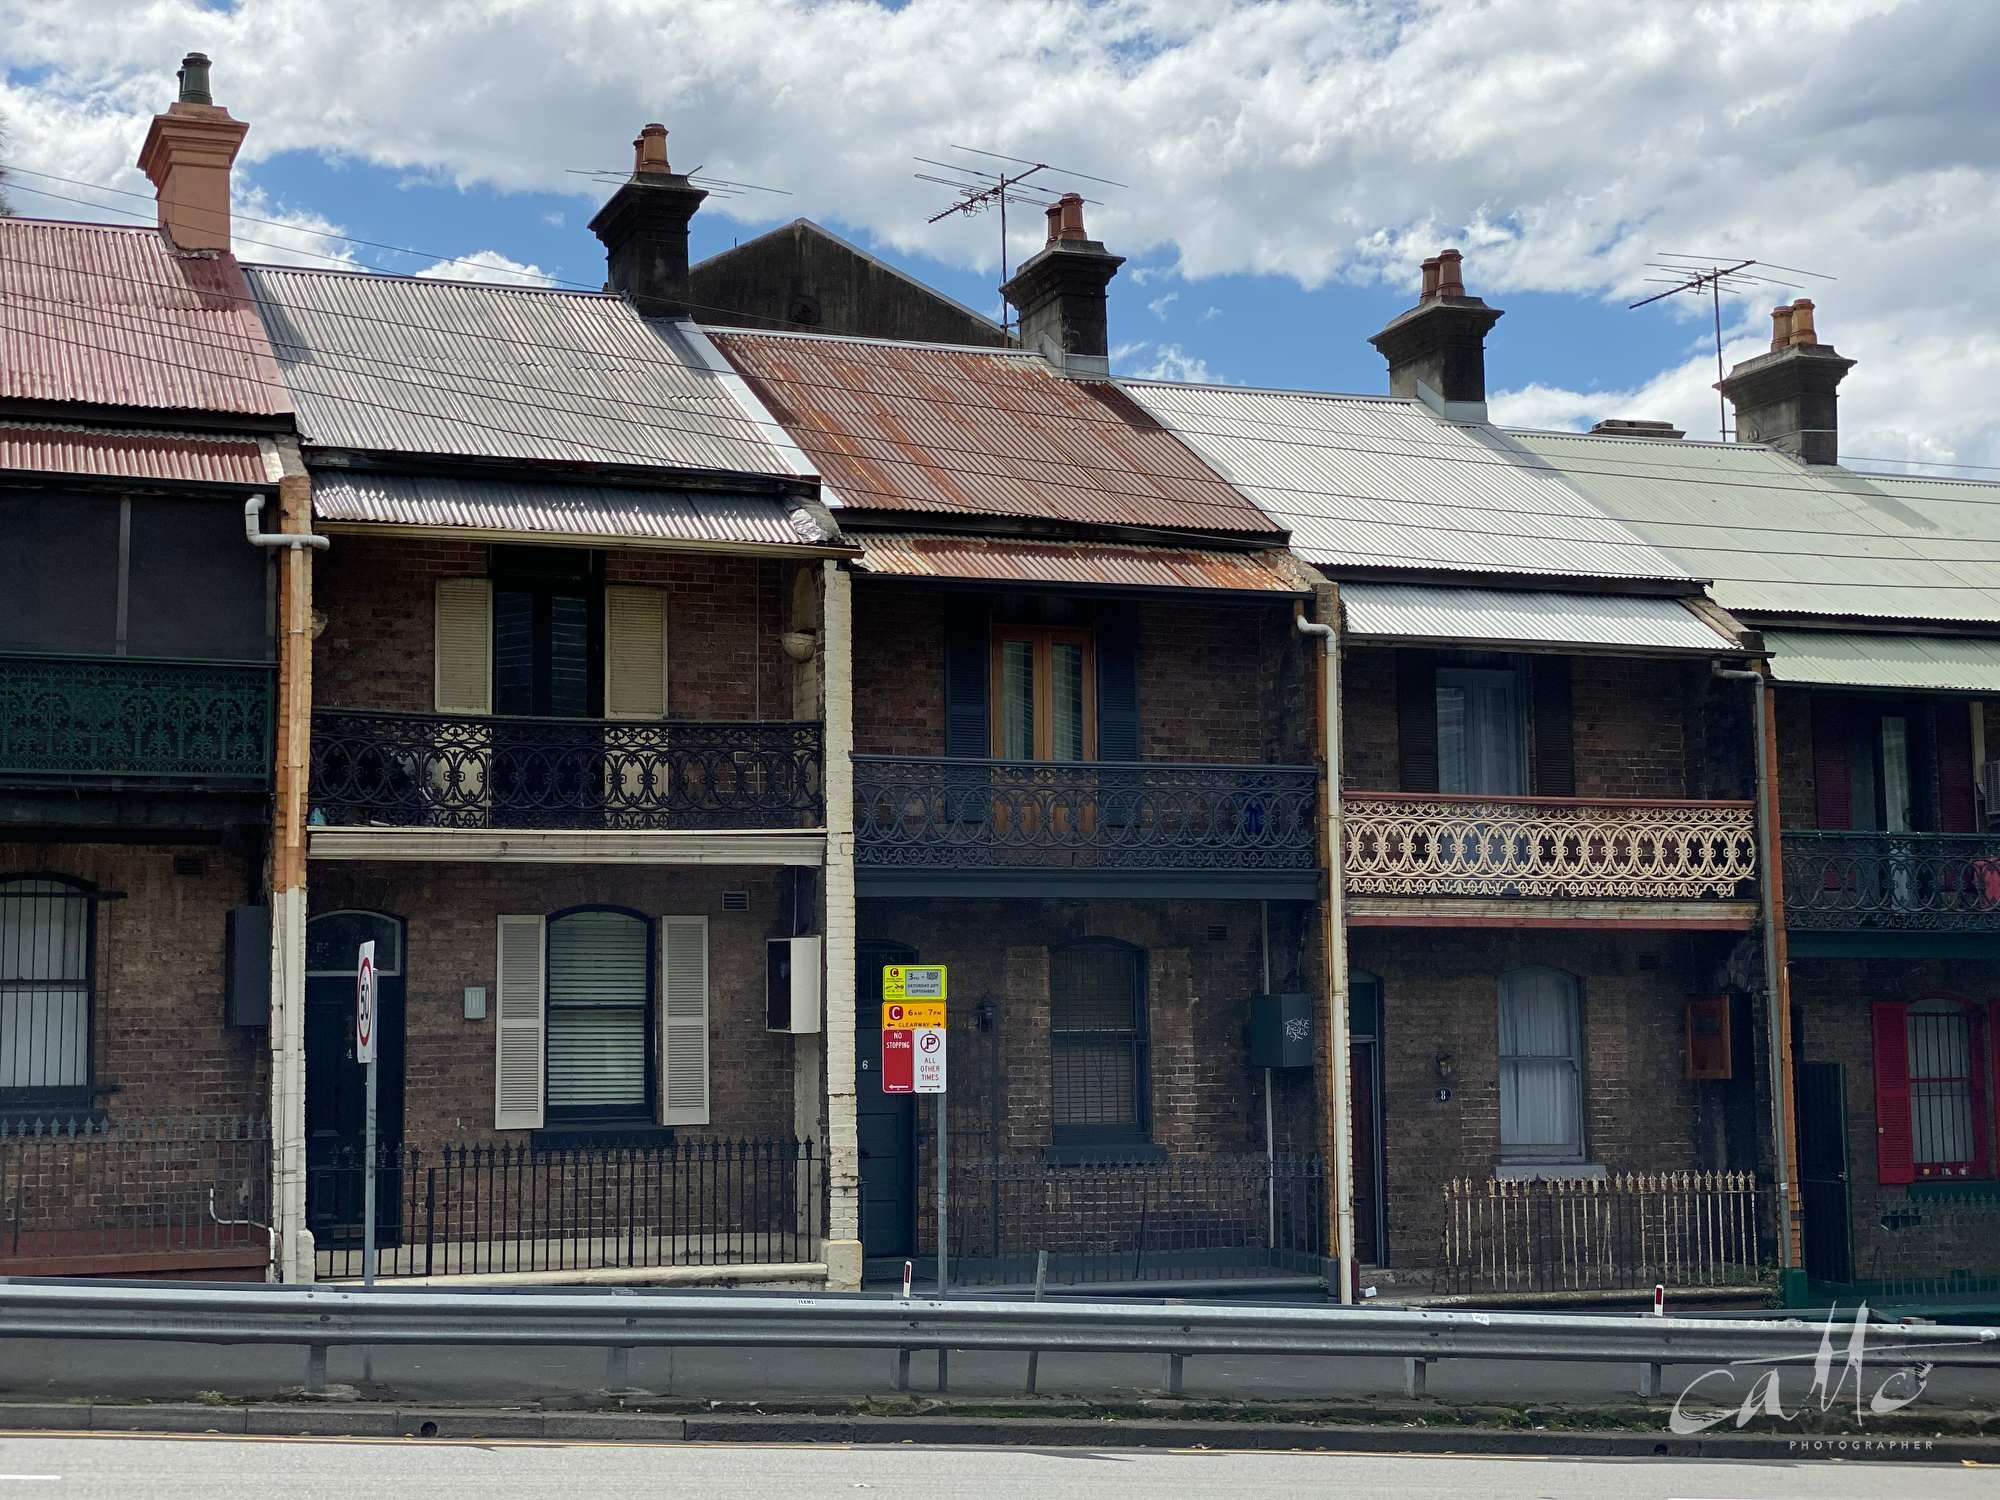 Cleveland St, Chippendale (iPhone 11 Pro - 2x zoom lens)